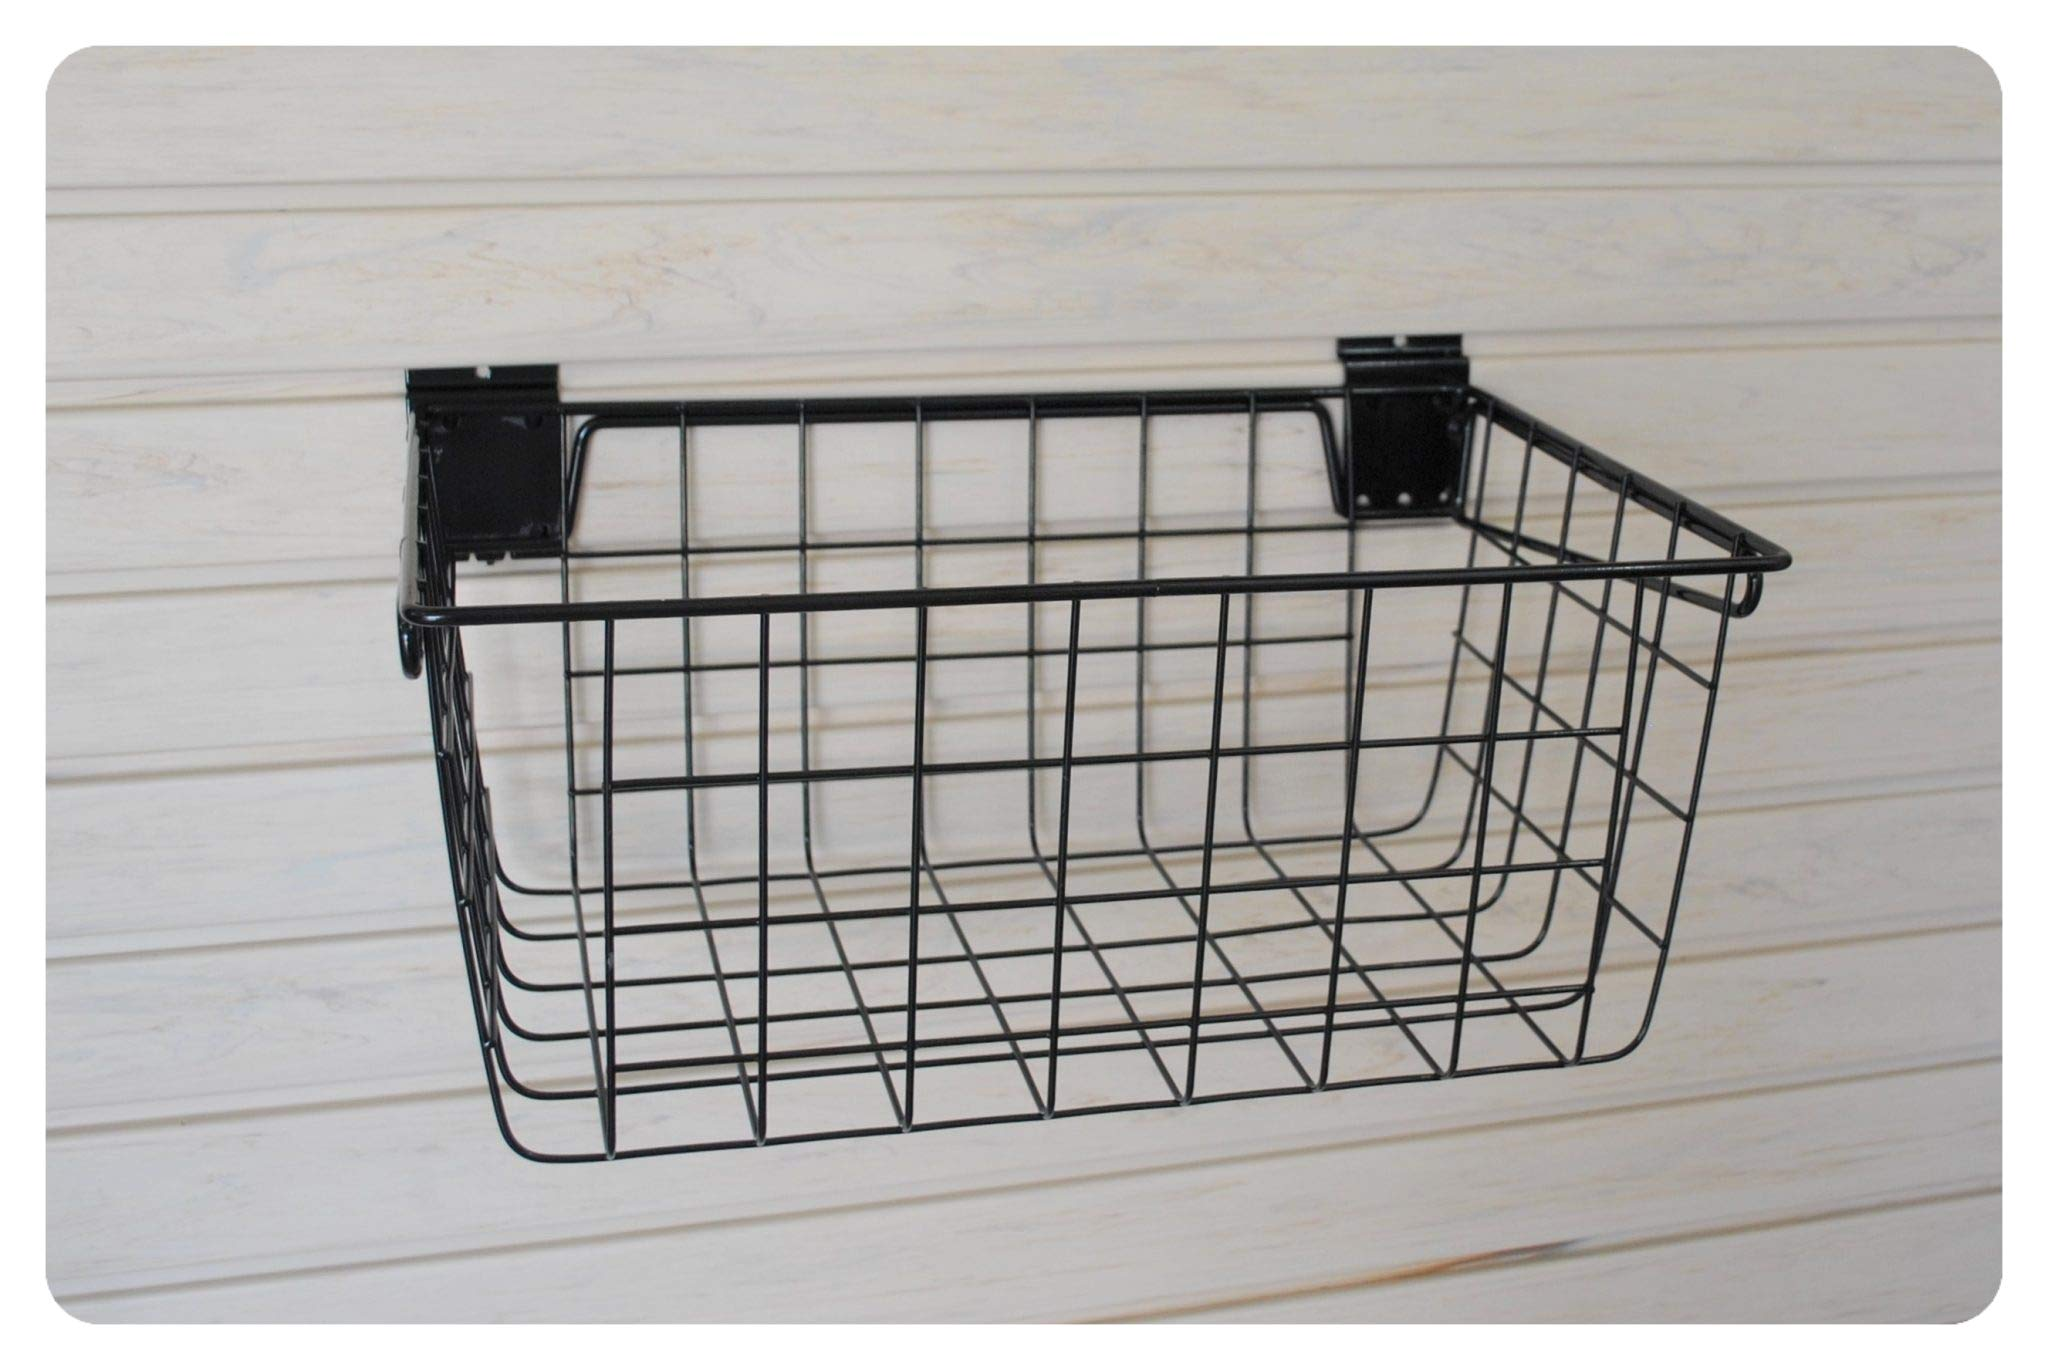 GaragePro 12'' x 18'' Large Ventilated Steel Basket for Slatwall Panels by The Garage Project